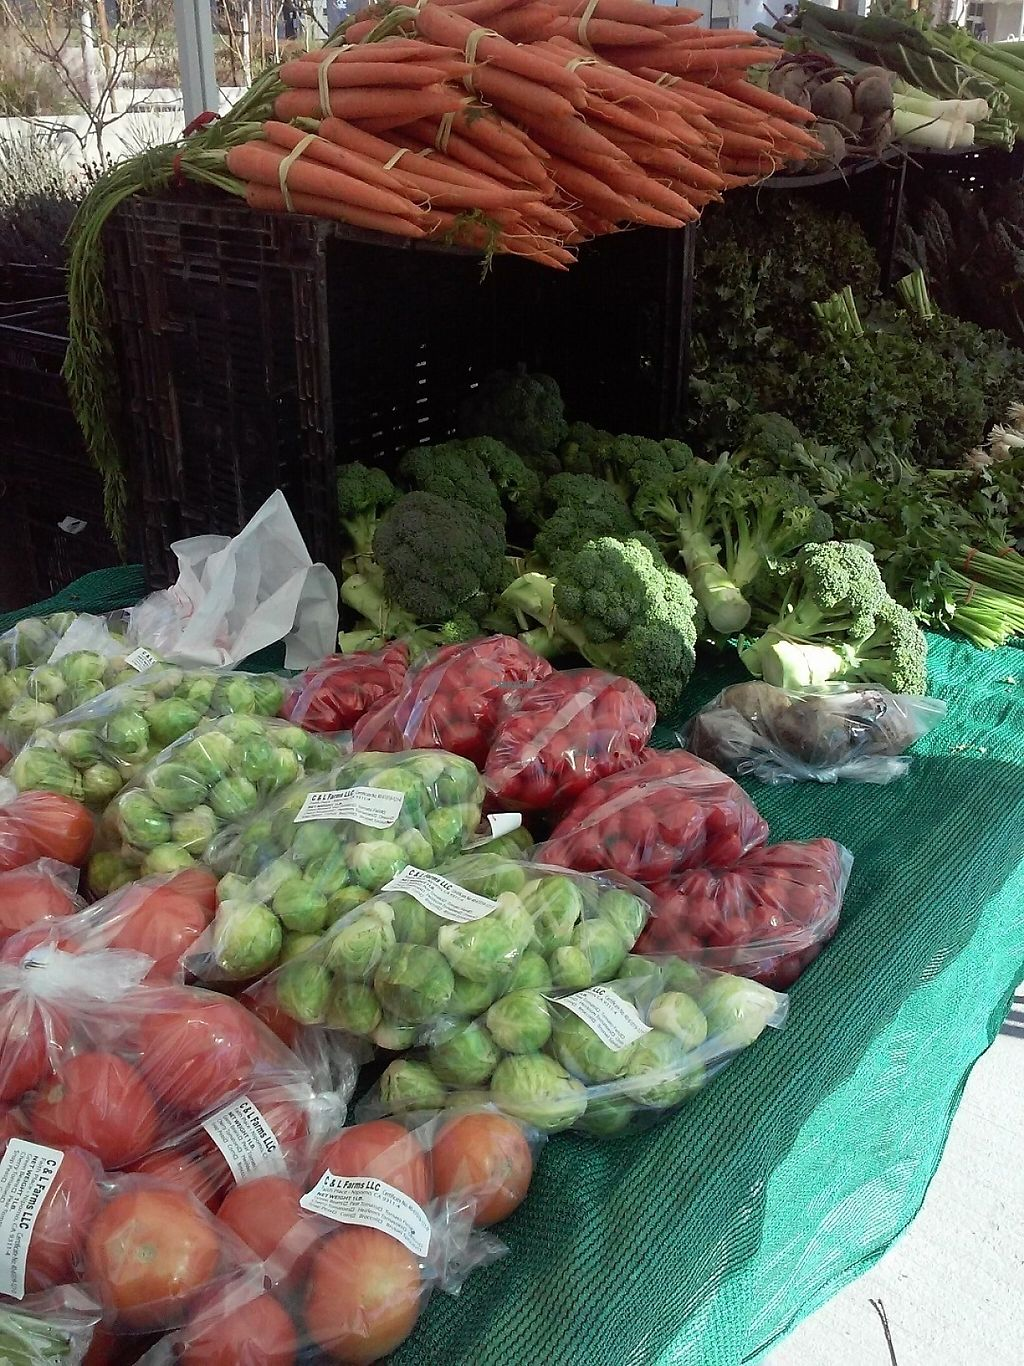 """Photo of Farmer's Market   by <a href=""""/members/profile/anastronomy"""">anastronomy</a> <br/>Locally grown produce <br/> December 30, 2016  - <a href='/contact/abuse/image/84750/206345'>Report</a>"""